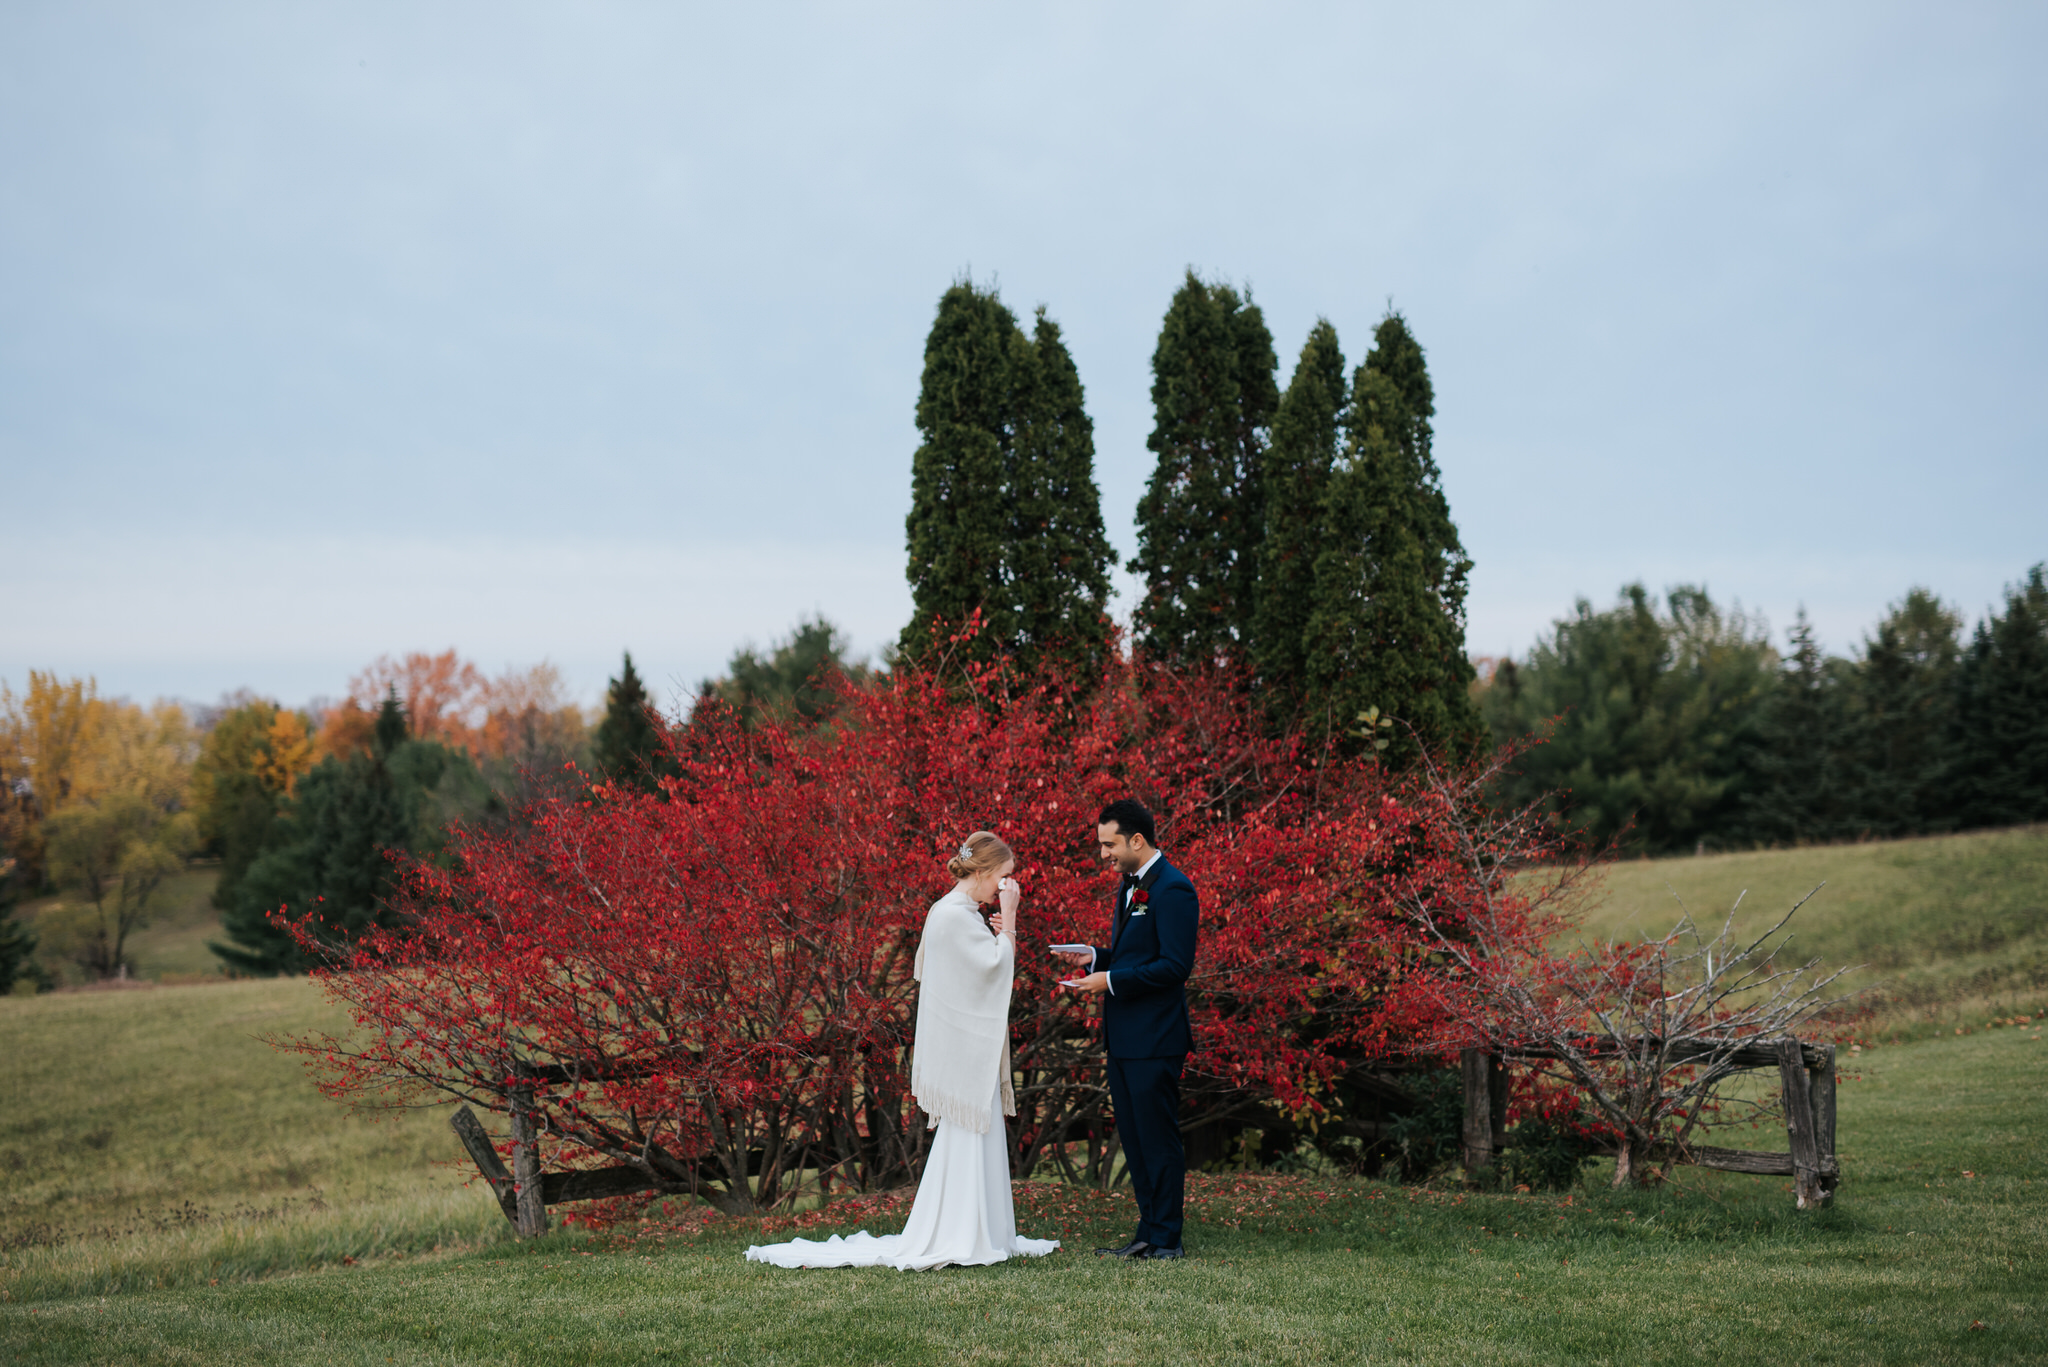 Waterstone Estate & Farms Wedding - fall wedding red trees